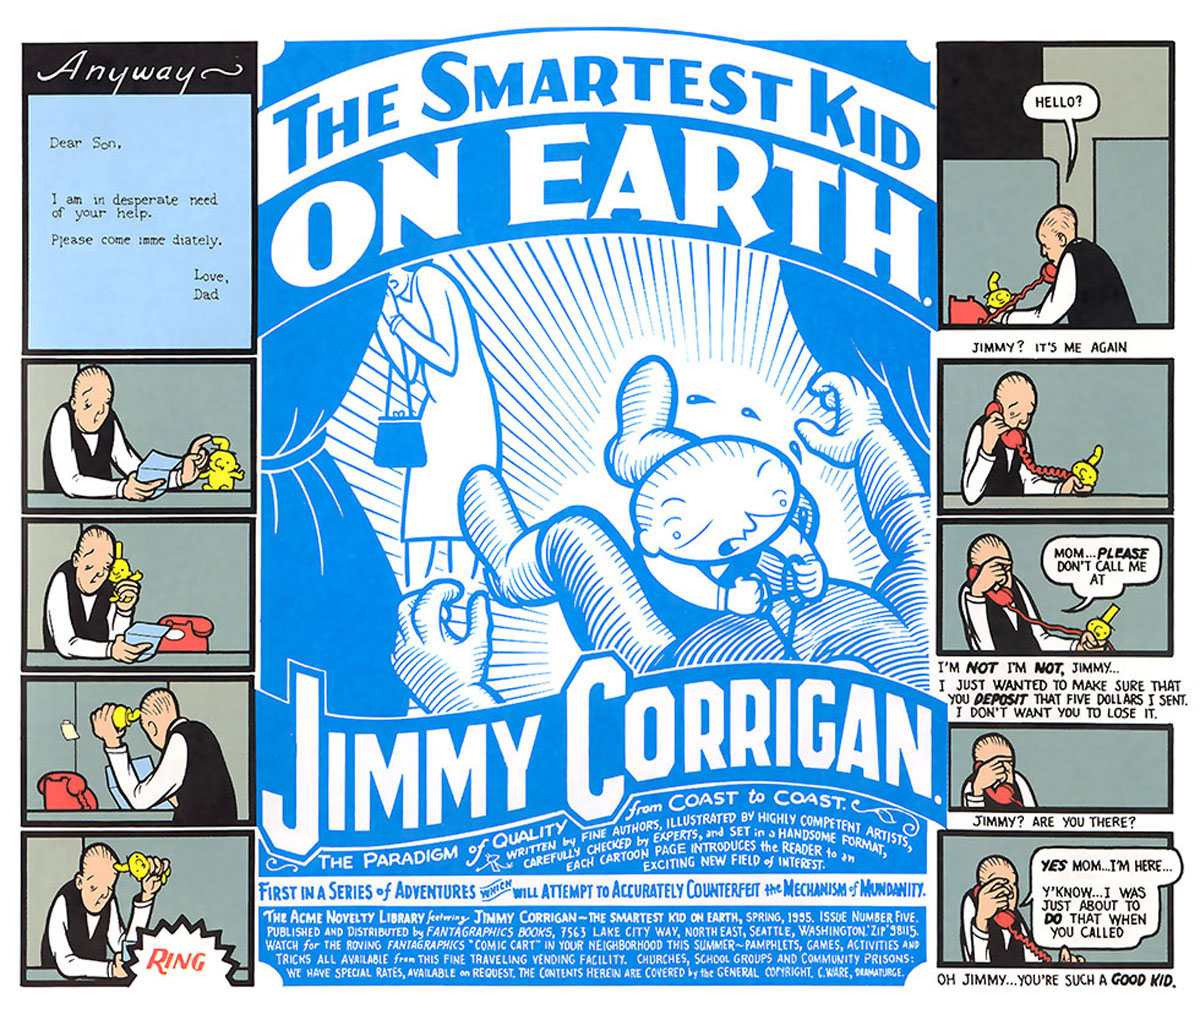 book analysis of jimmy corrigan the A character analysis of jimmy corrigan in the smartest kid on earth by chris ware.